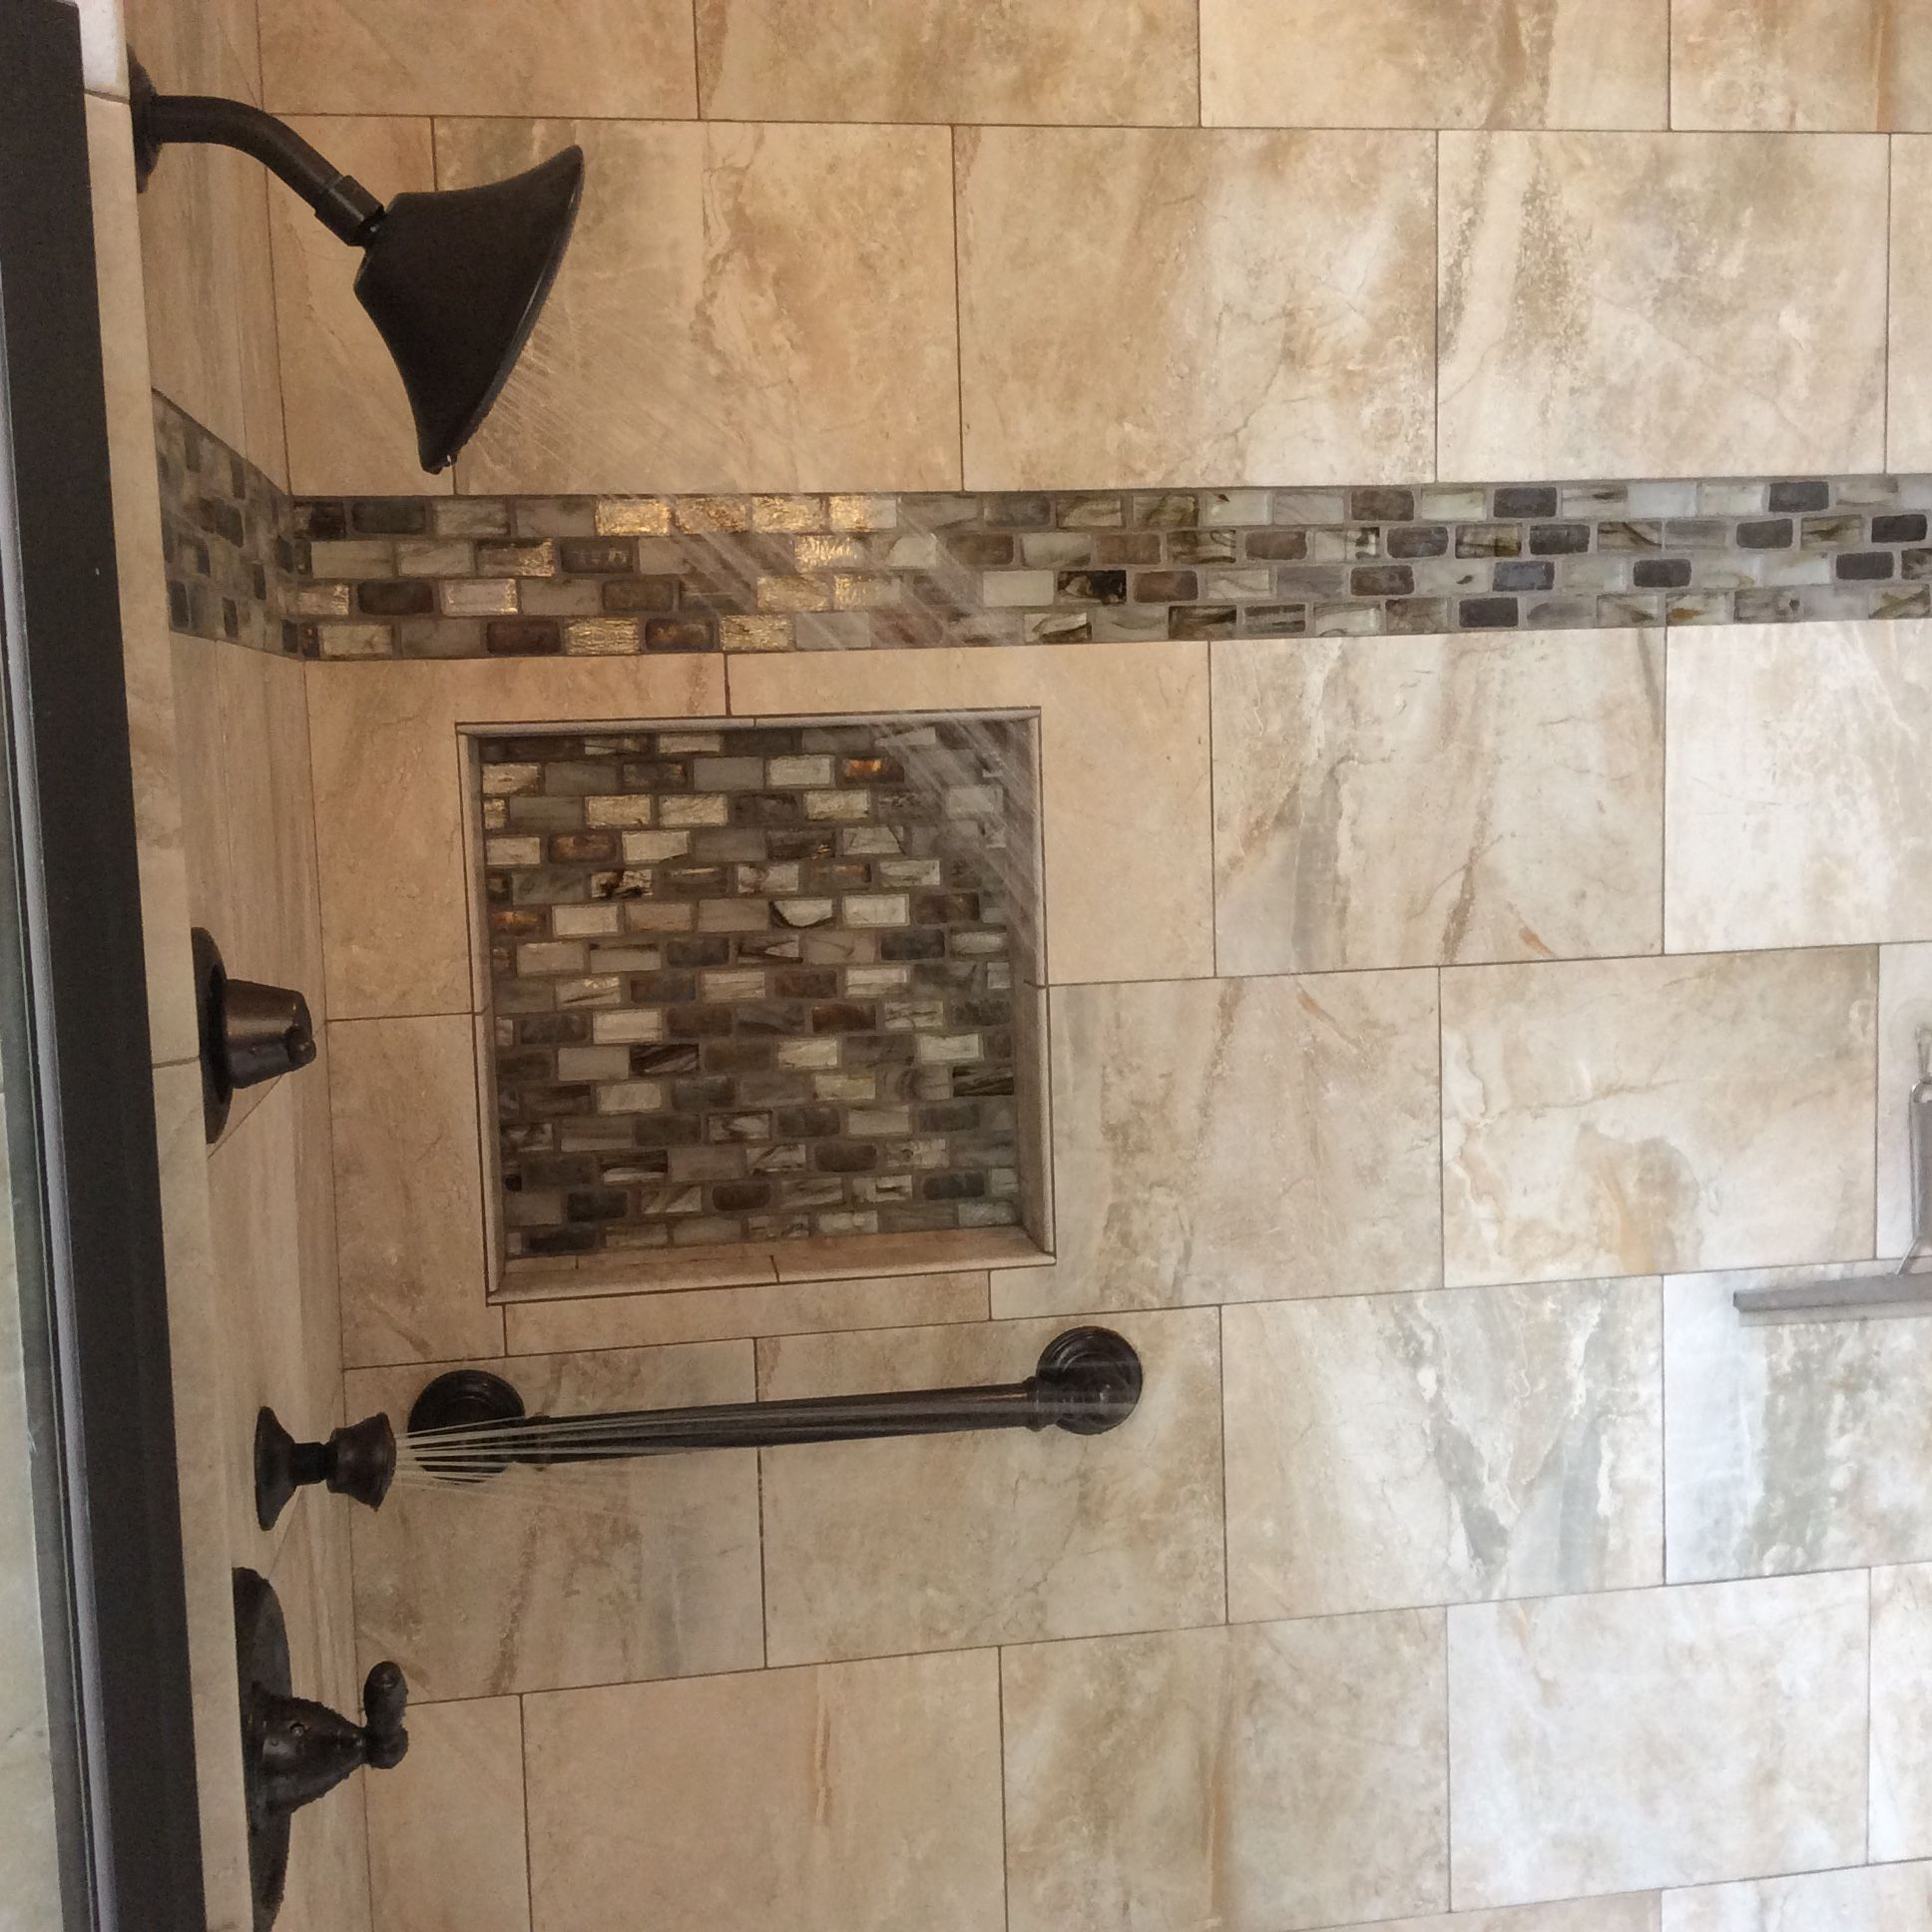 How To Install Bathroom Tile In Corners Bathroom Tile: Ultimate Master Bath Remodel With Custom Tile, Corner